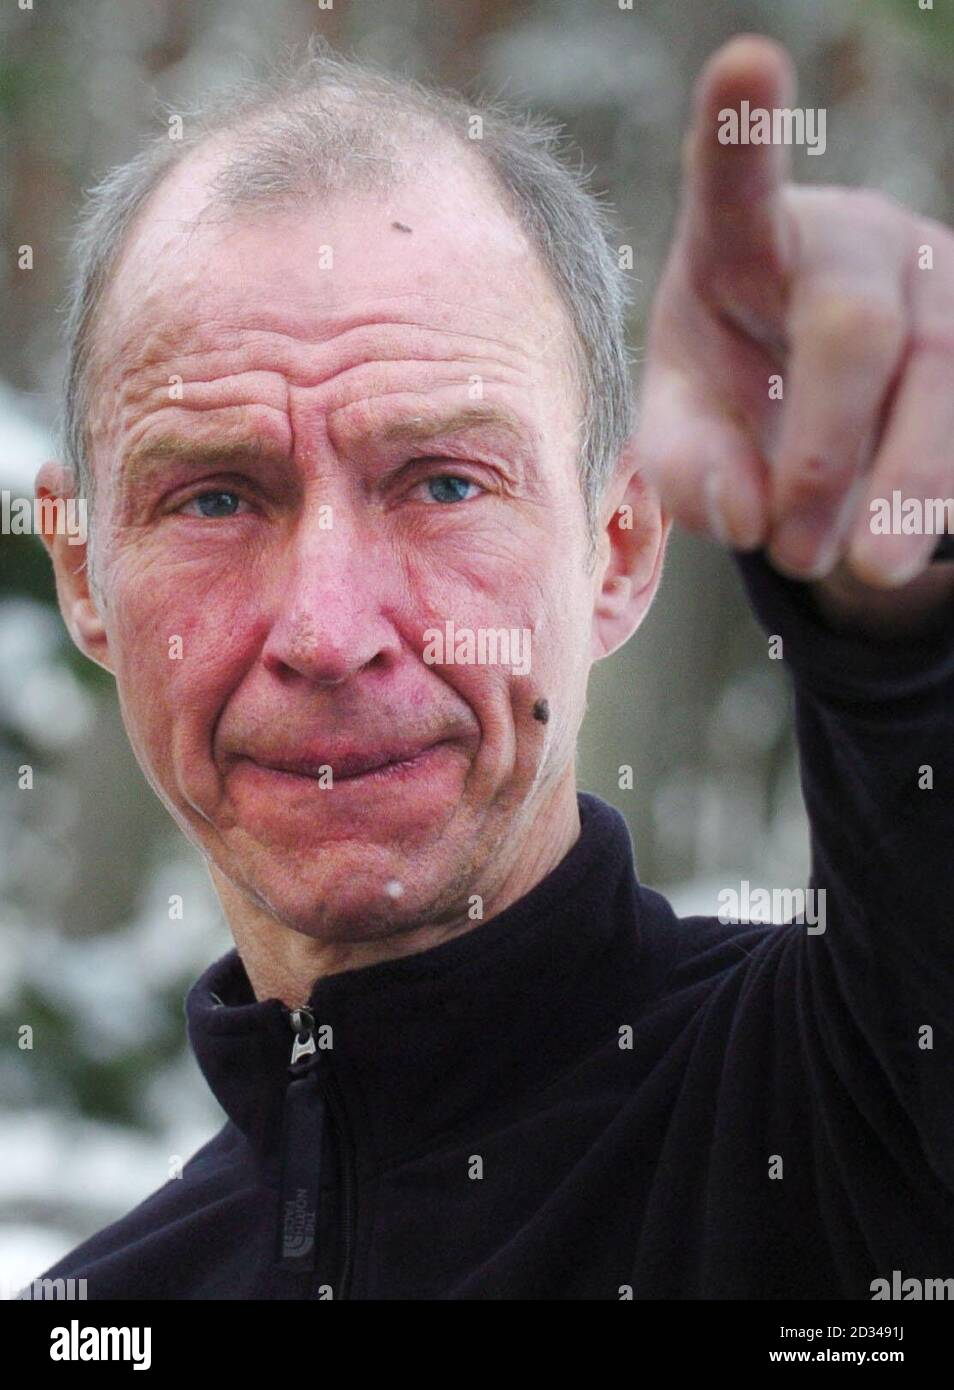 David Amos, 57, from Edinburgh in the Cairngorms in the Scottish Highlands. Amos and a second climber, Marek Horecek, 30, a professional climber from Prague, were missing in the Highlands in atrocious weather conditions for two days but have been found safe and well, it emerged today. A major search was launched after the men, who were taking part in an international expedition in the Cairngorms, failed to return to Glenmore Lodge, near Aviemore, on Tuesday evening. The men were found this morning by an RAF helicopter from Lossiemouth. Stock Photo